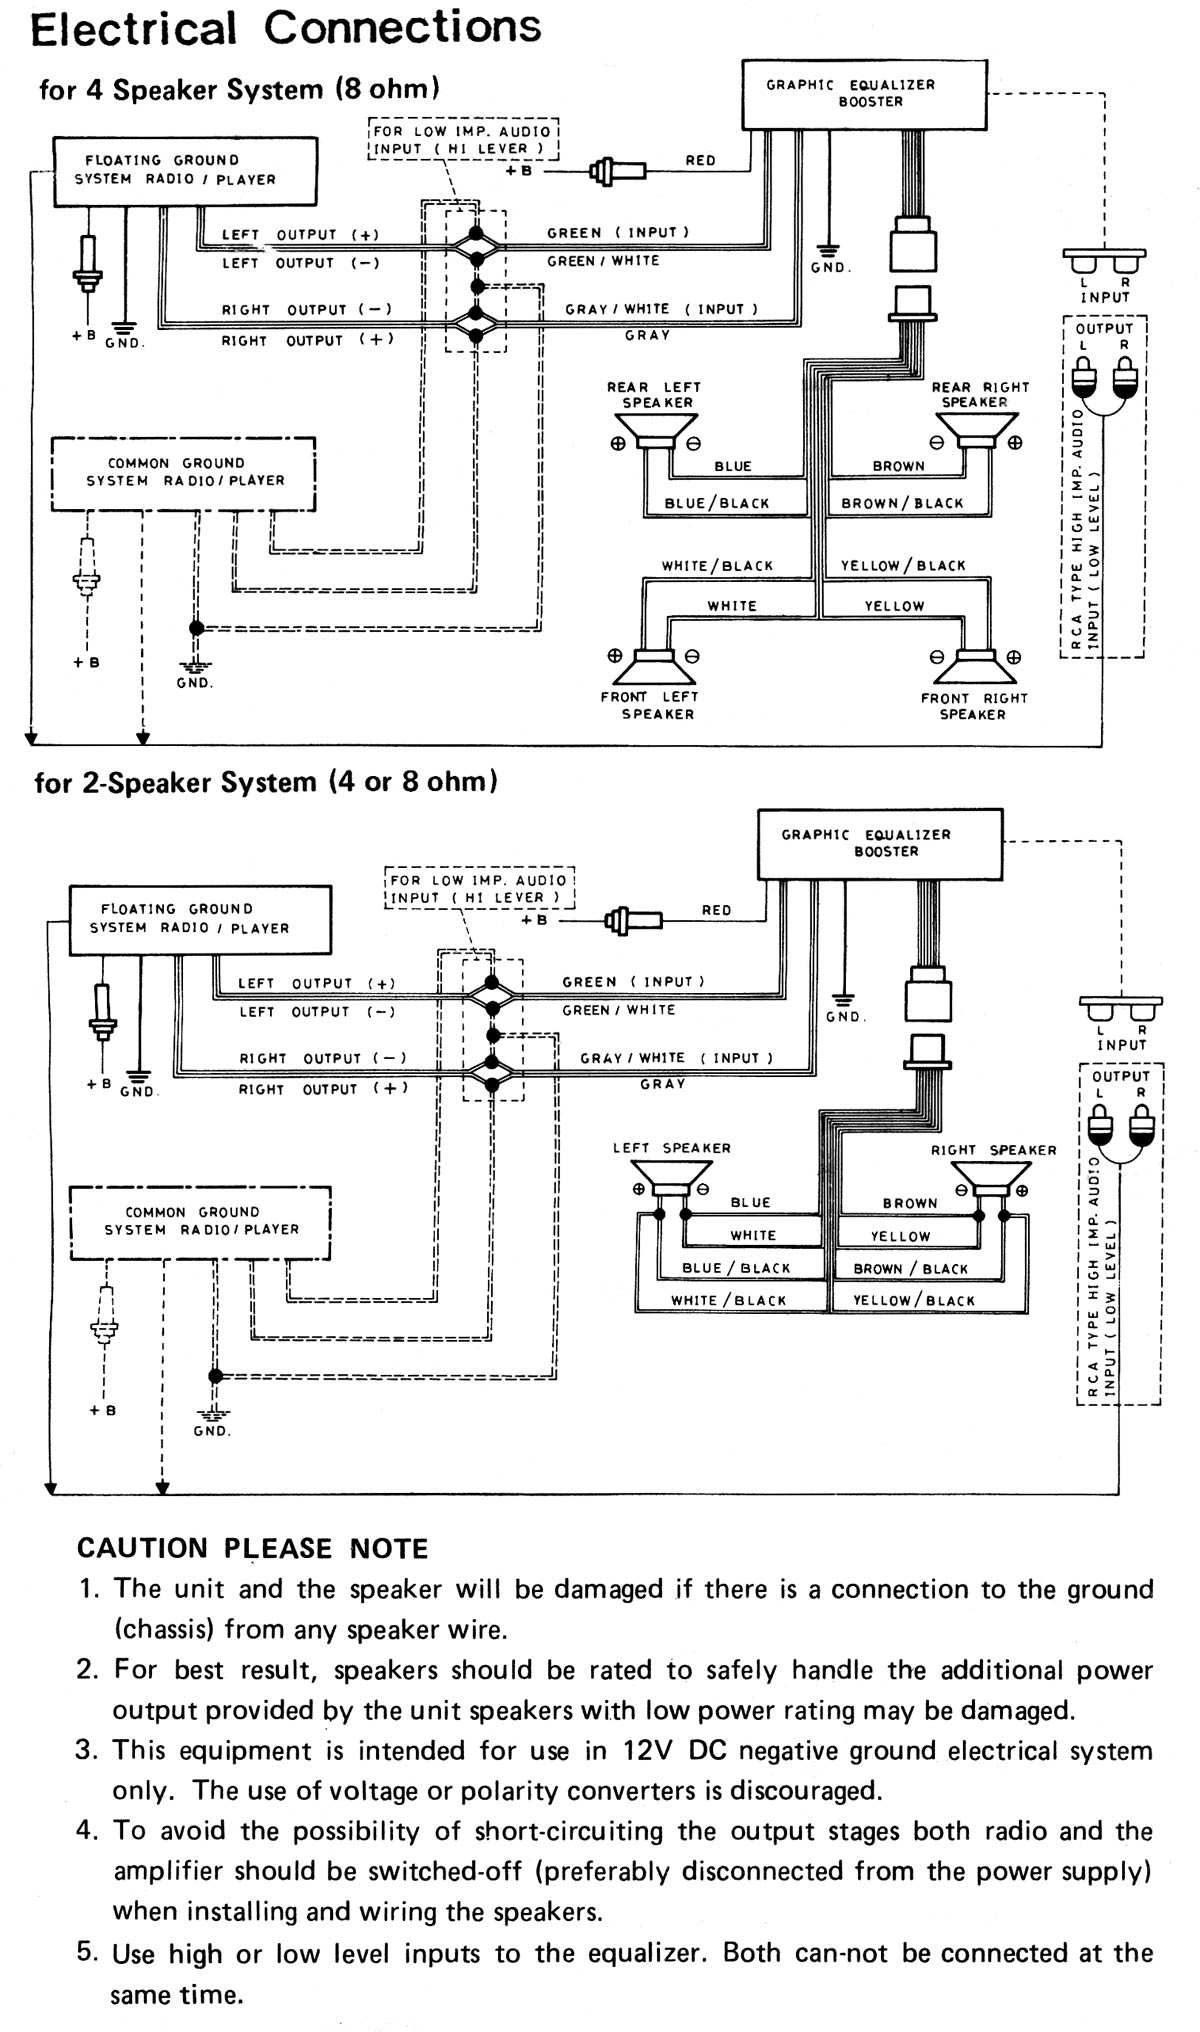 booster wiring schematic help! wiring a '79 am fm to a power booster equalizer?? the equalizer wiring diagram at edmiracle.co